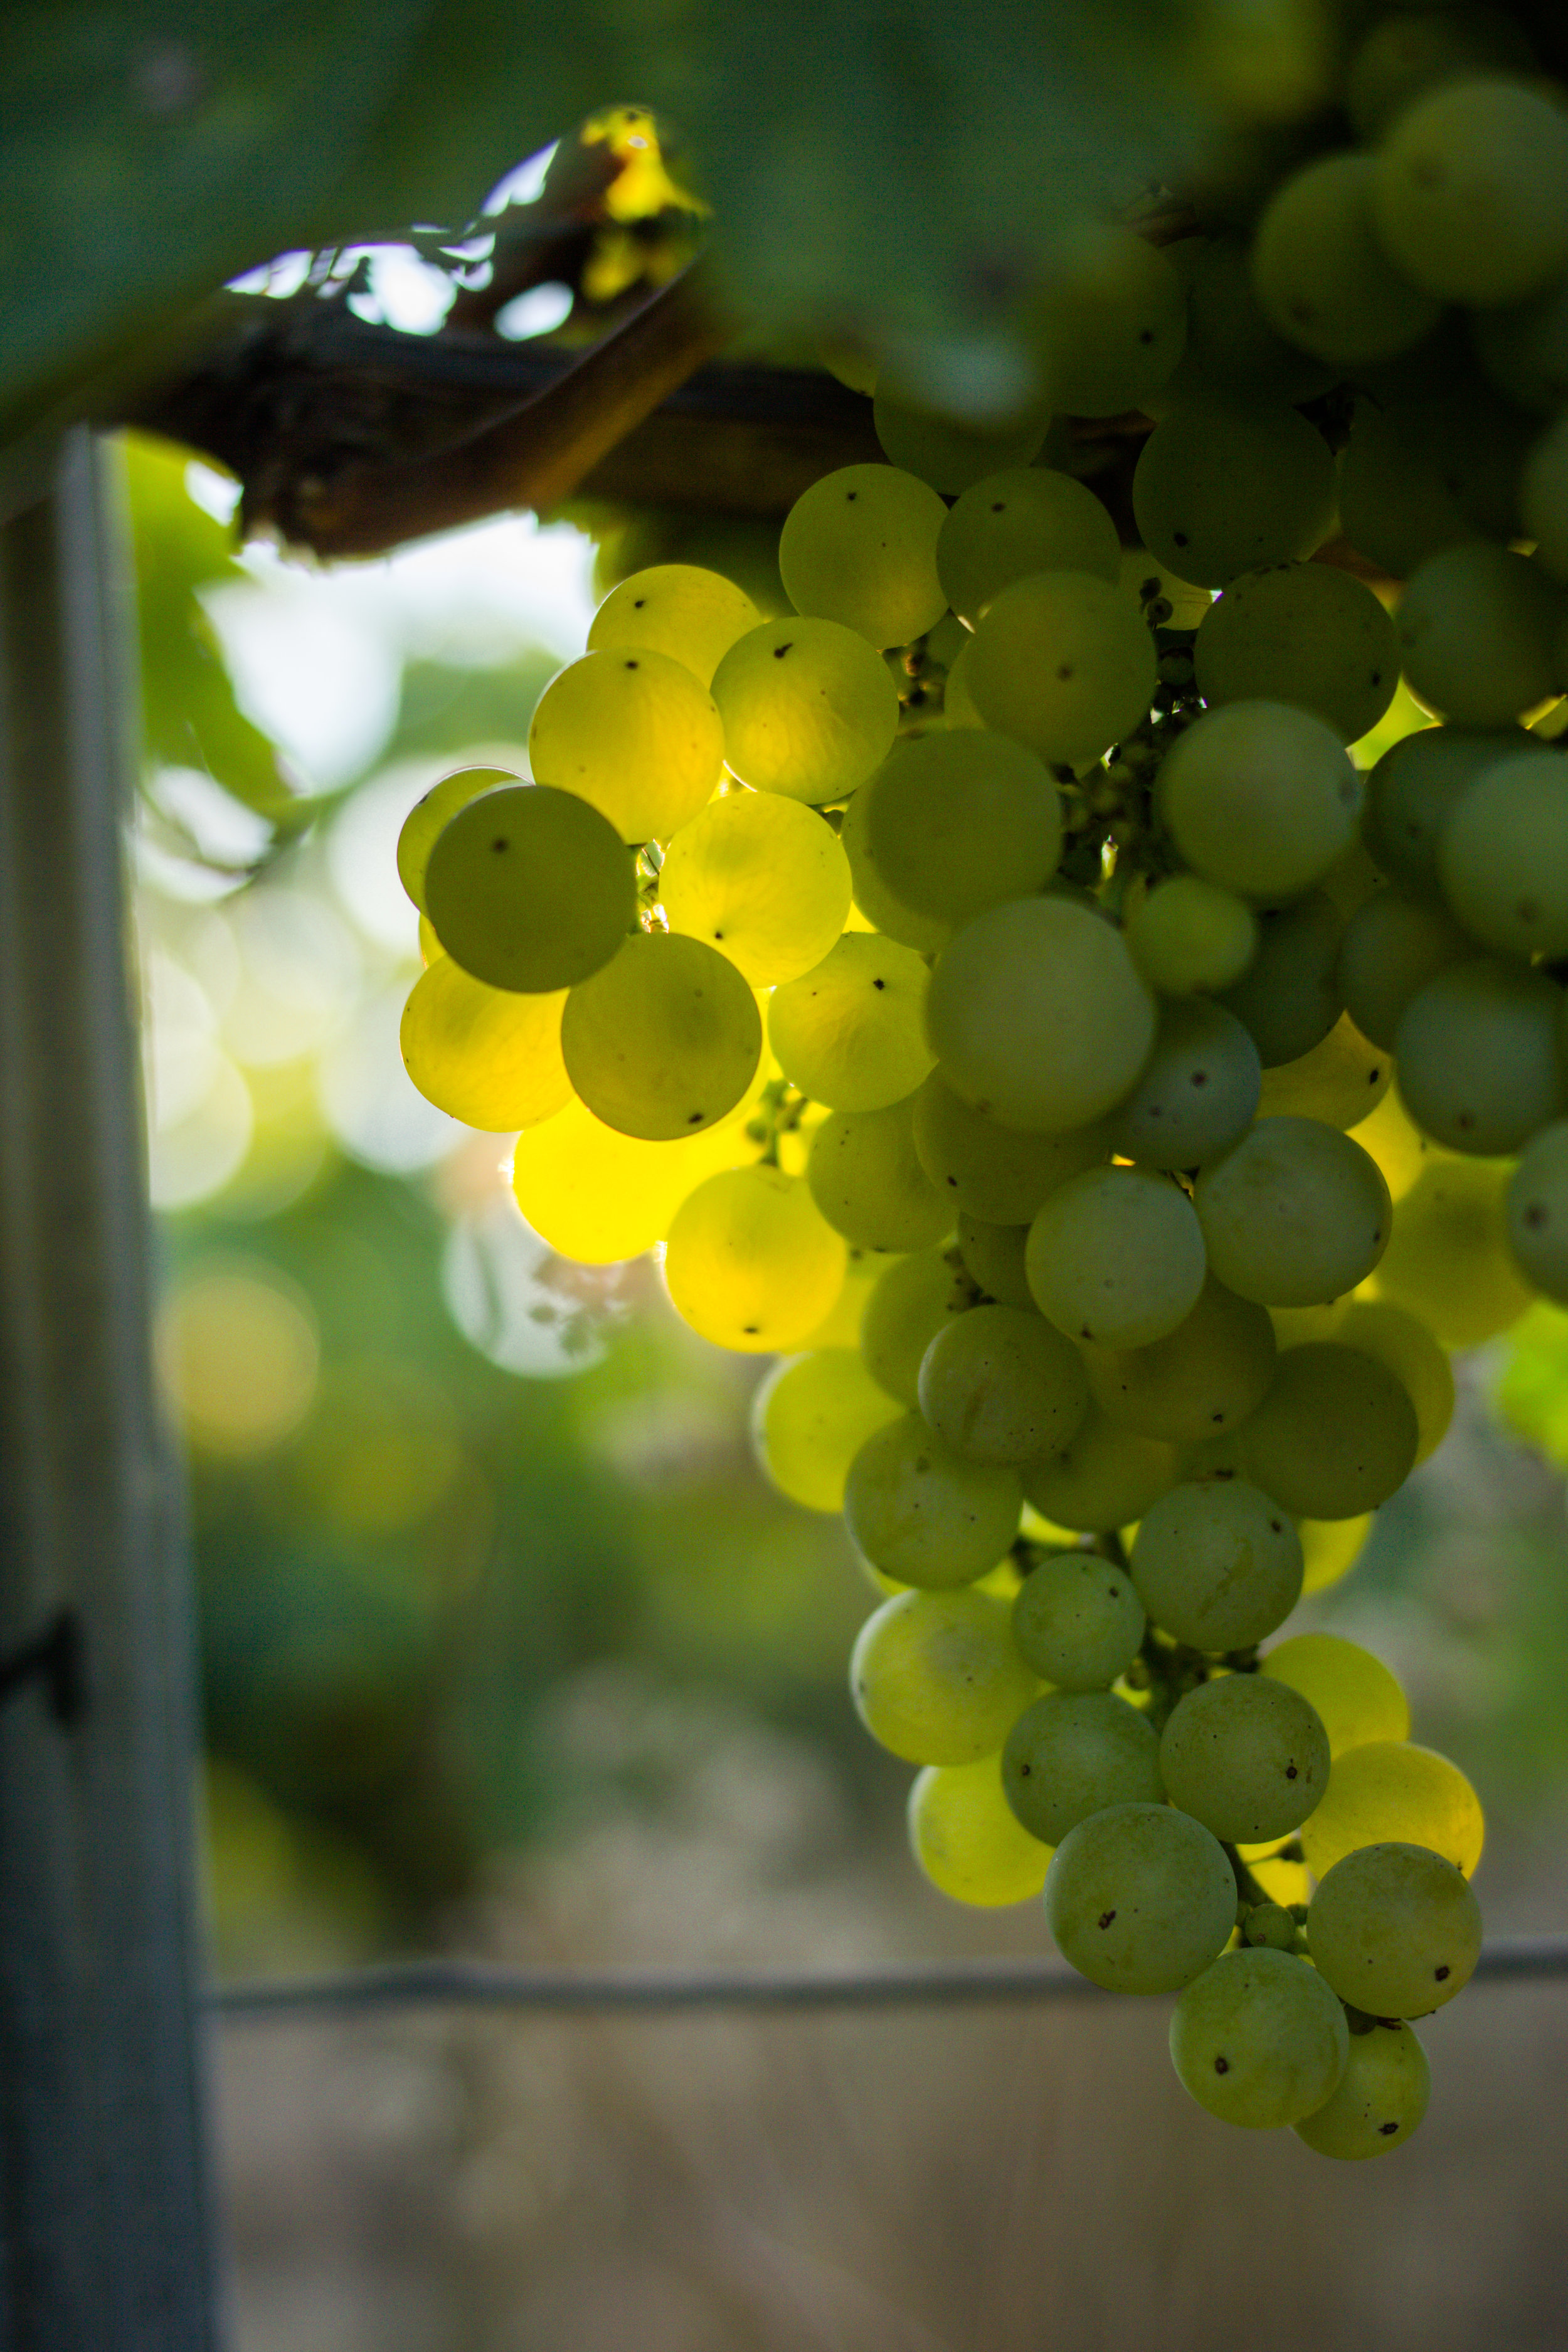 Sun shines through a bunch of grapes on the vine